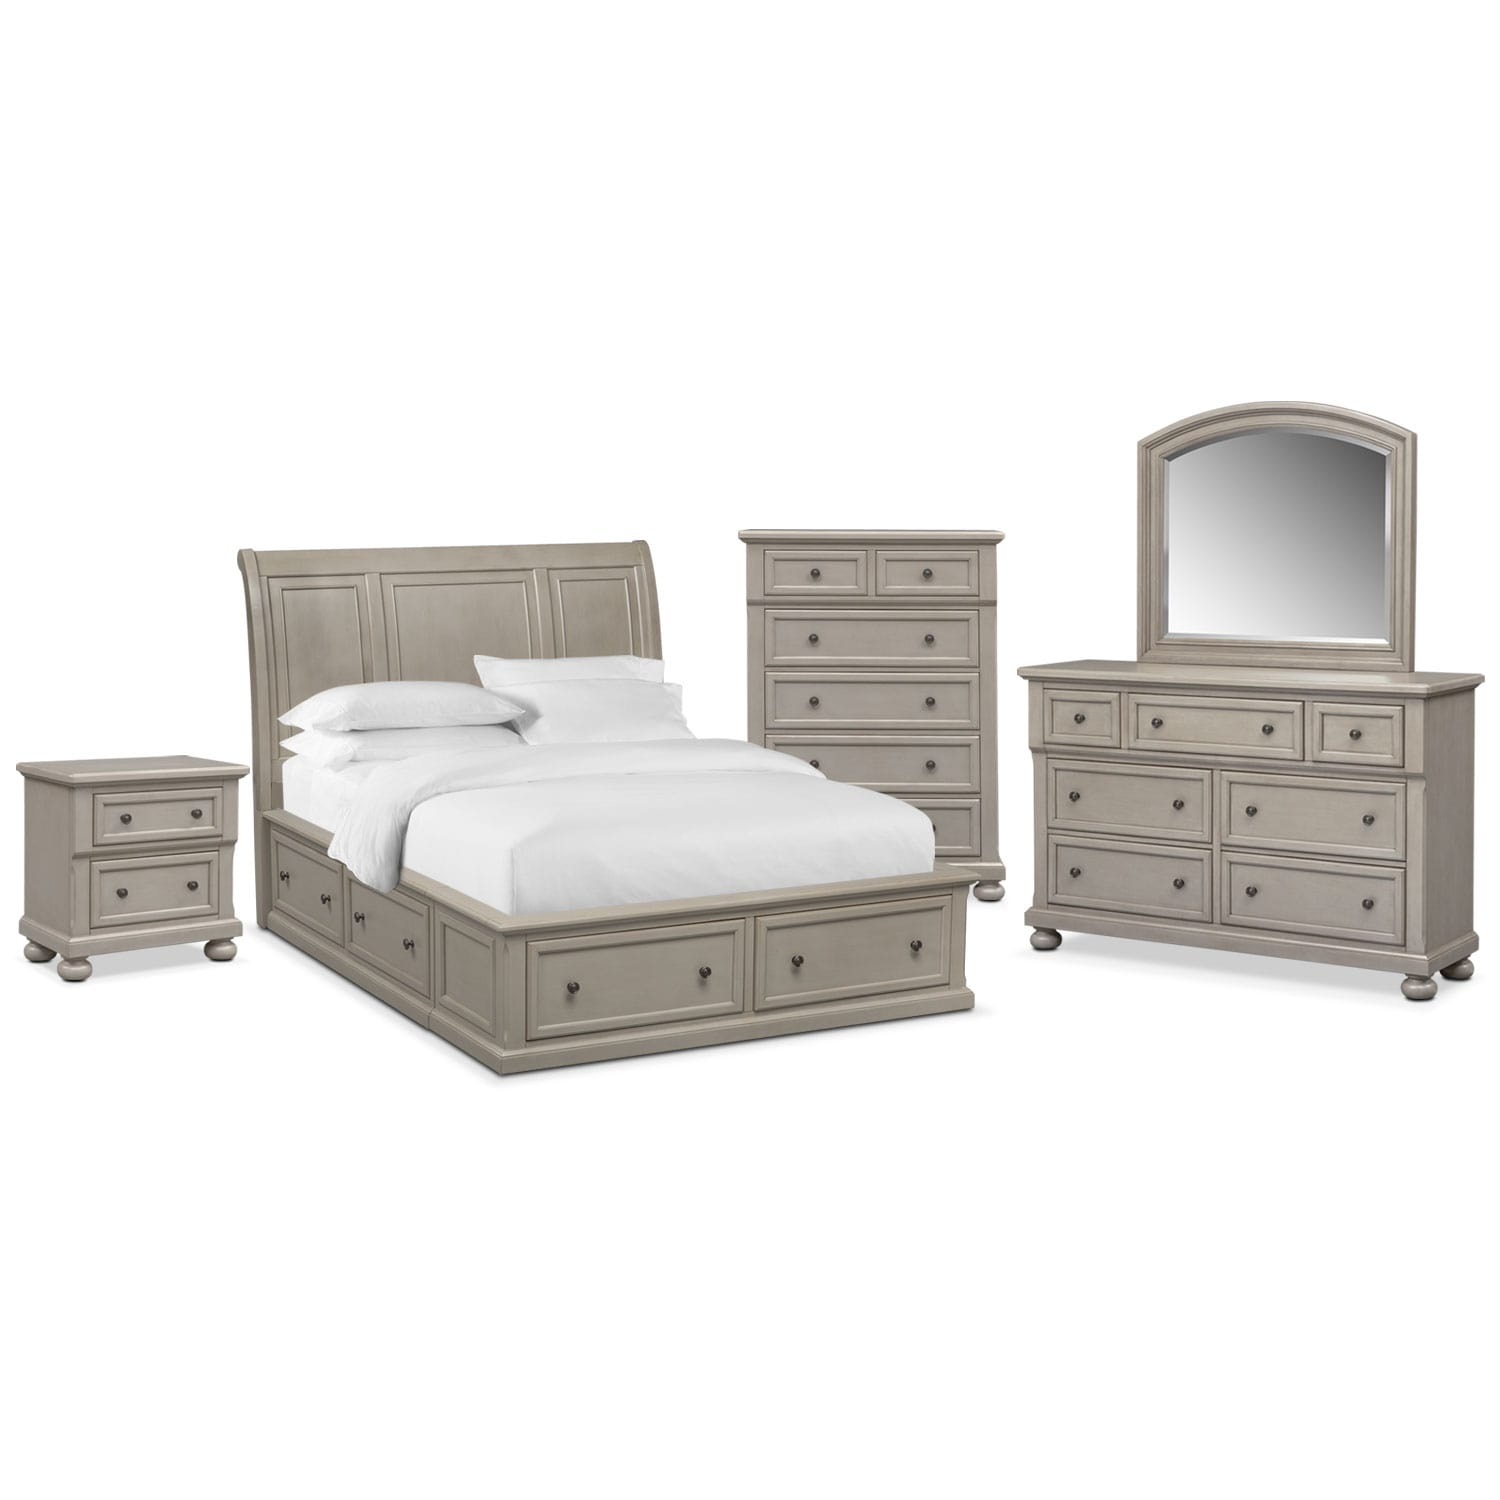 Hanover Queen 7-Piece Storage Bedroom Set - Gray